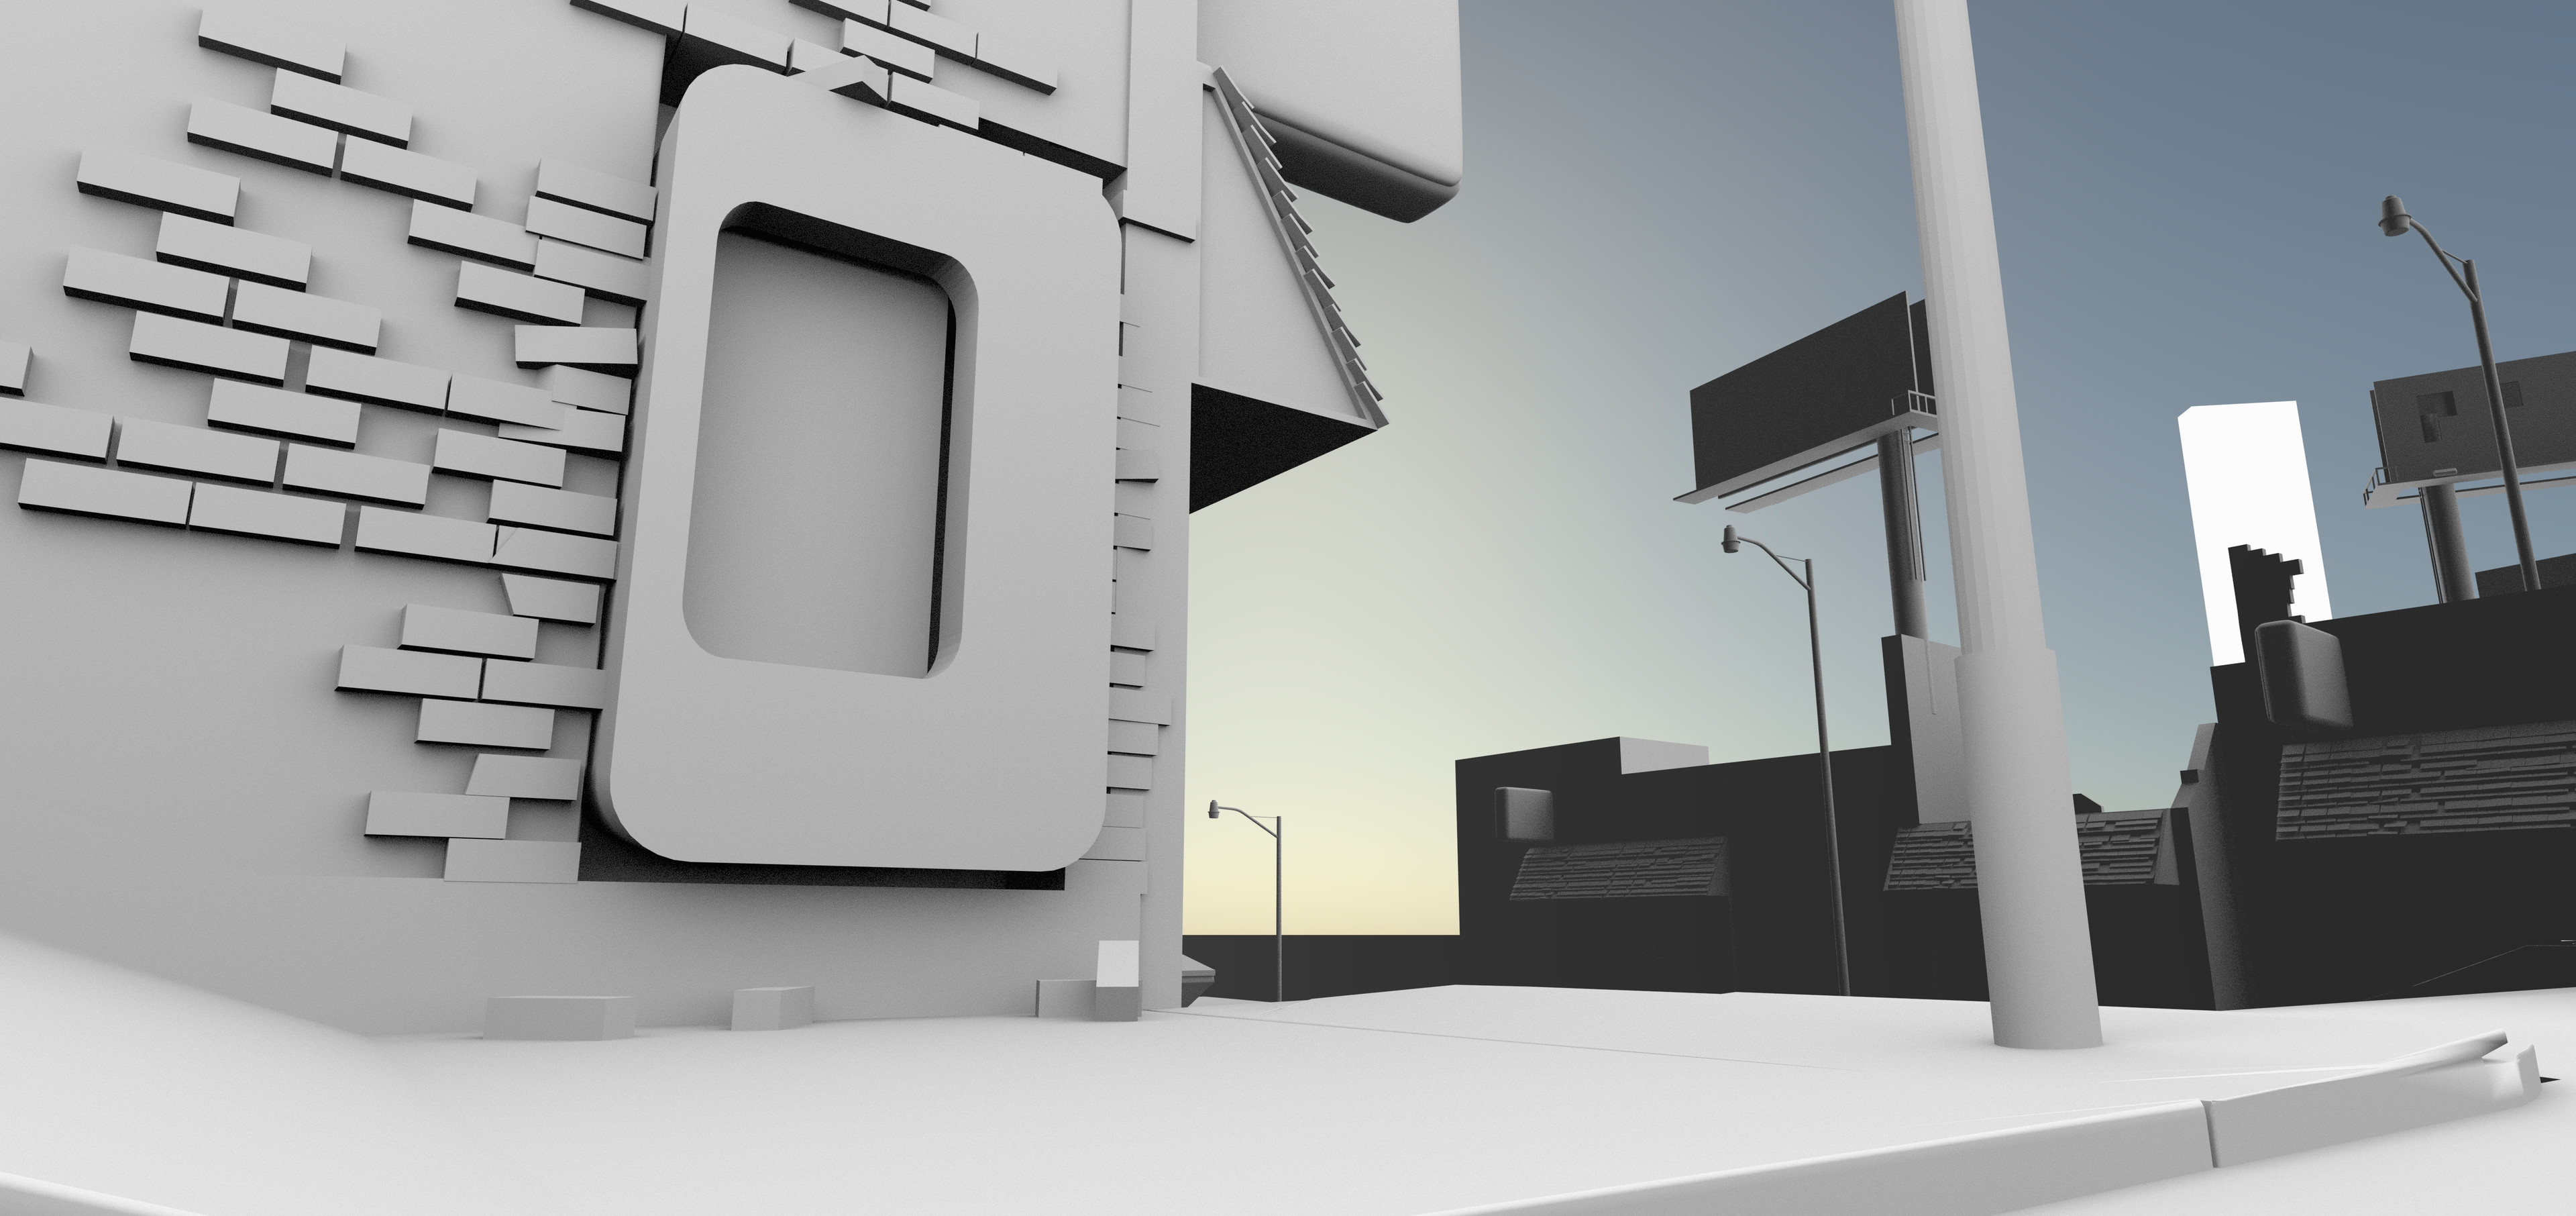 rough block out. As simple as this is, I realize that I probably overbuilt my assets by quite a bit.